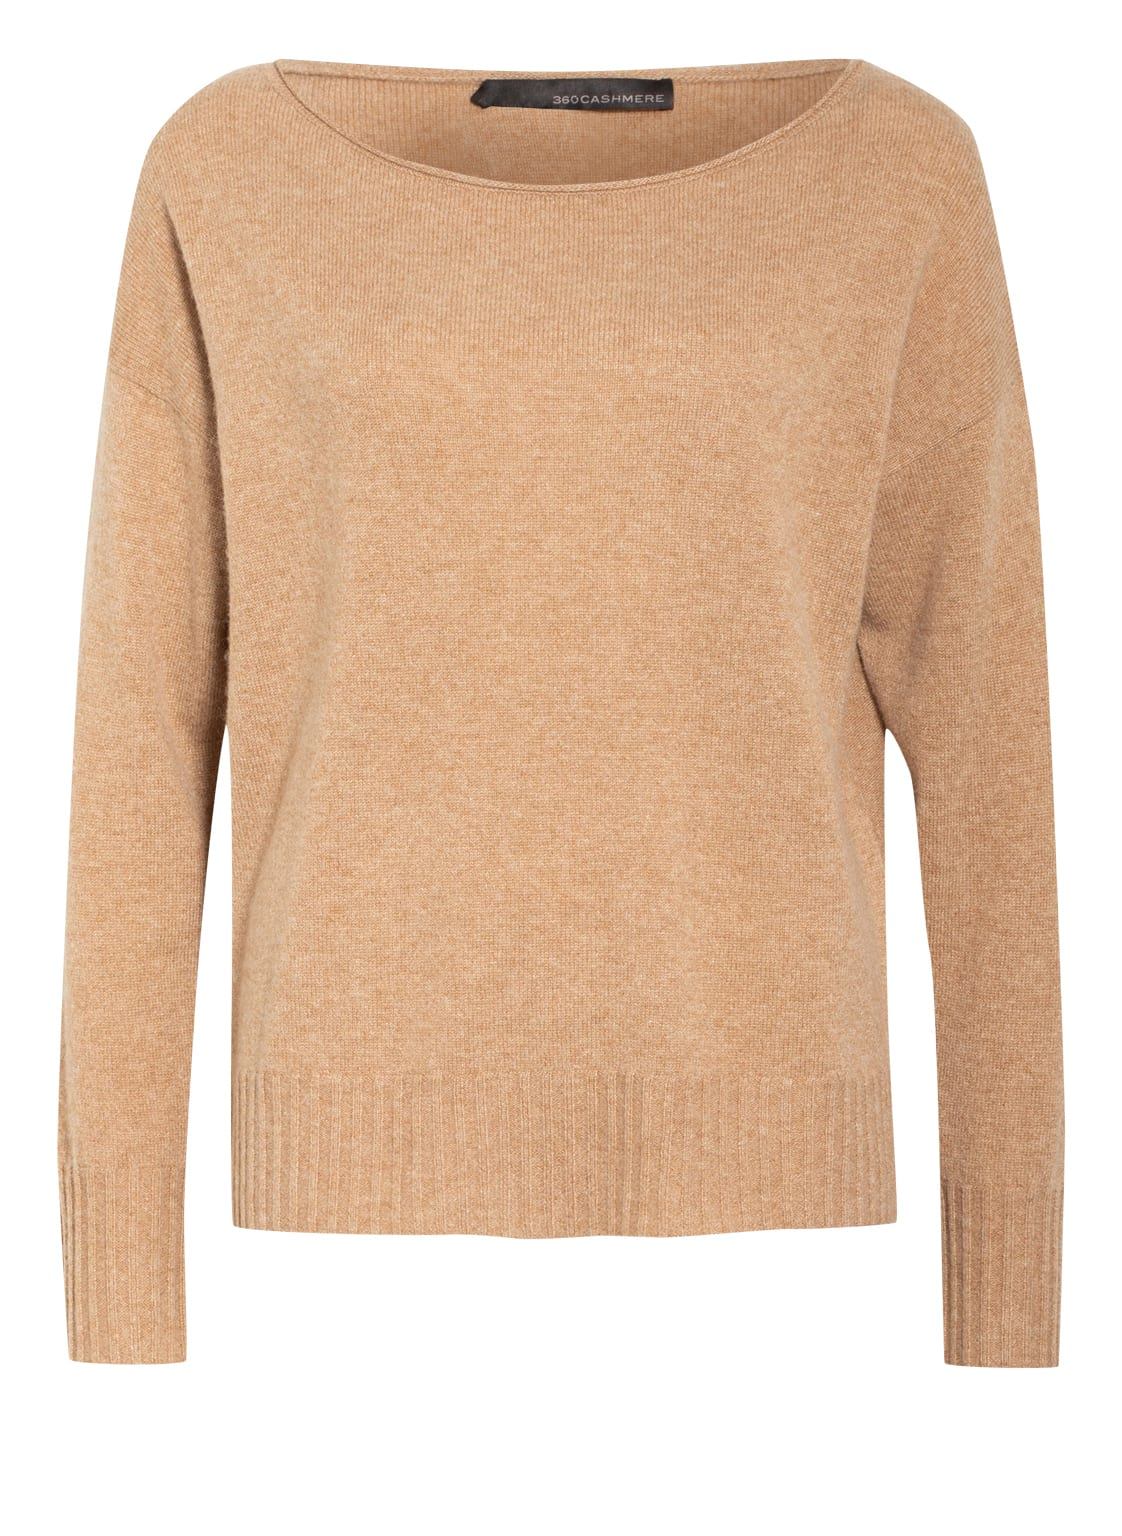 Image of 360cashmere Cashmere-Pullover braun